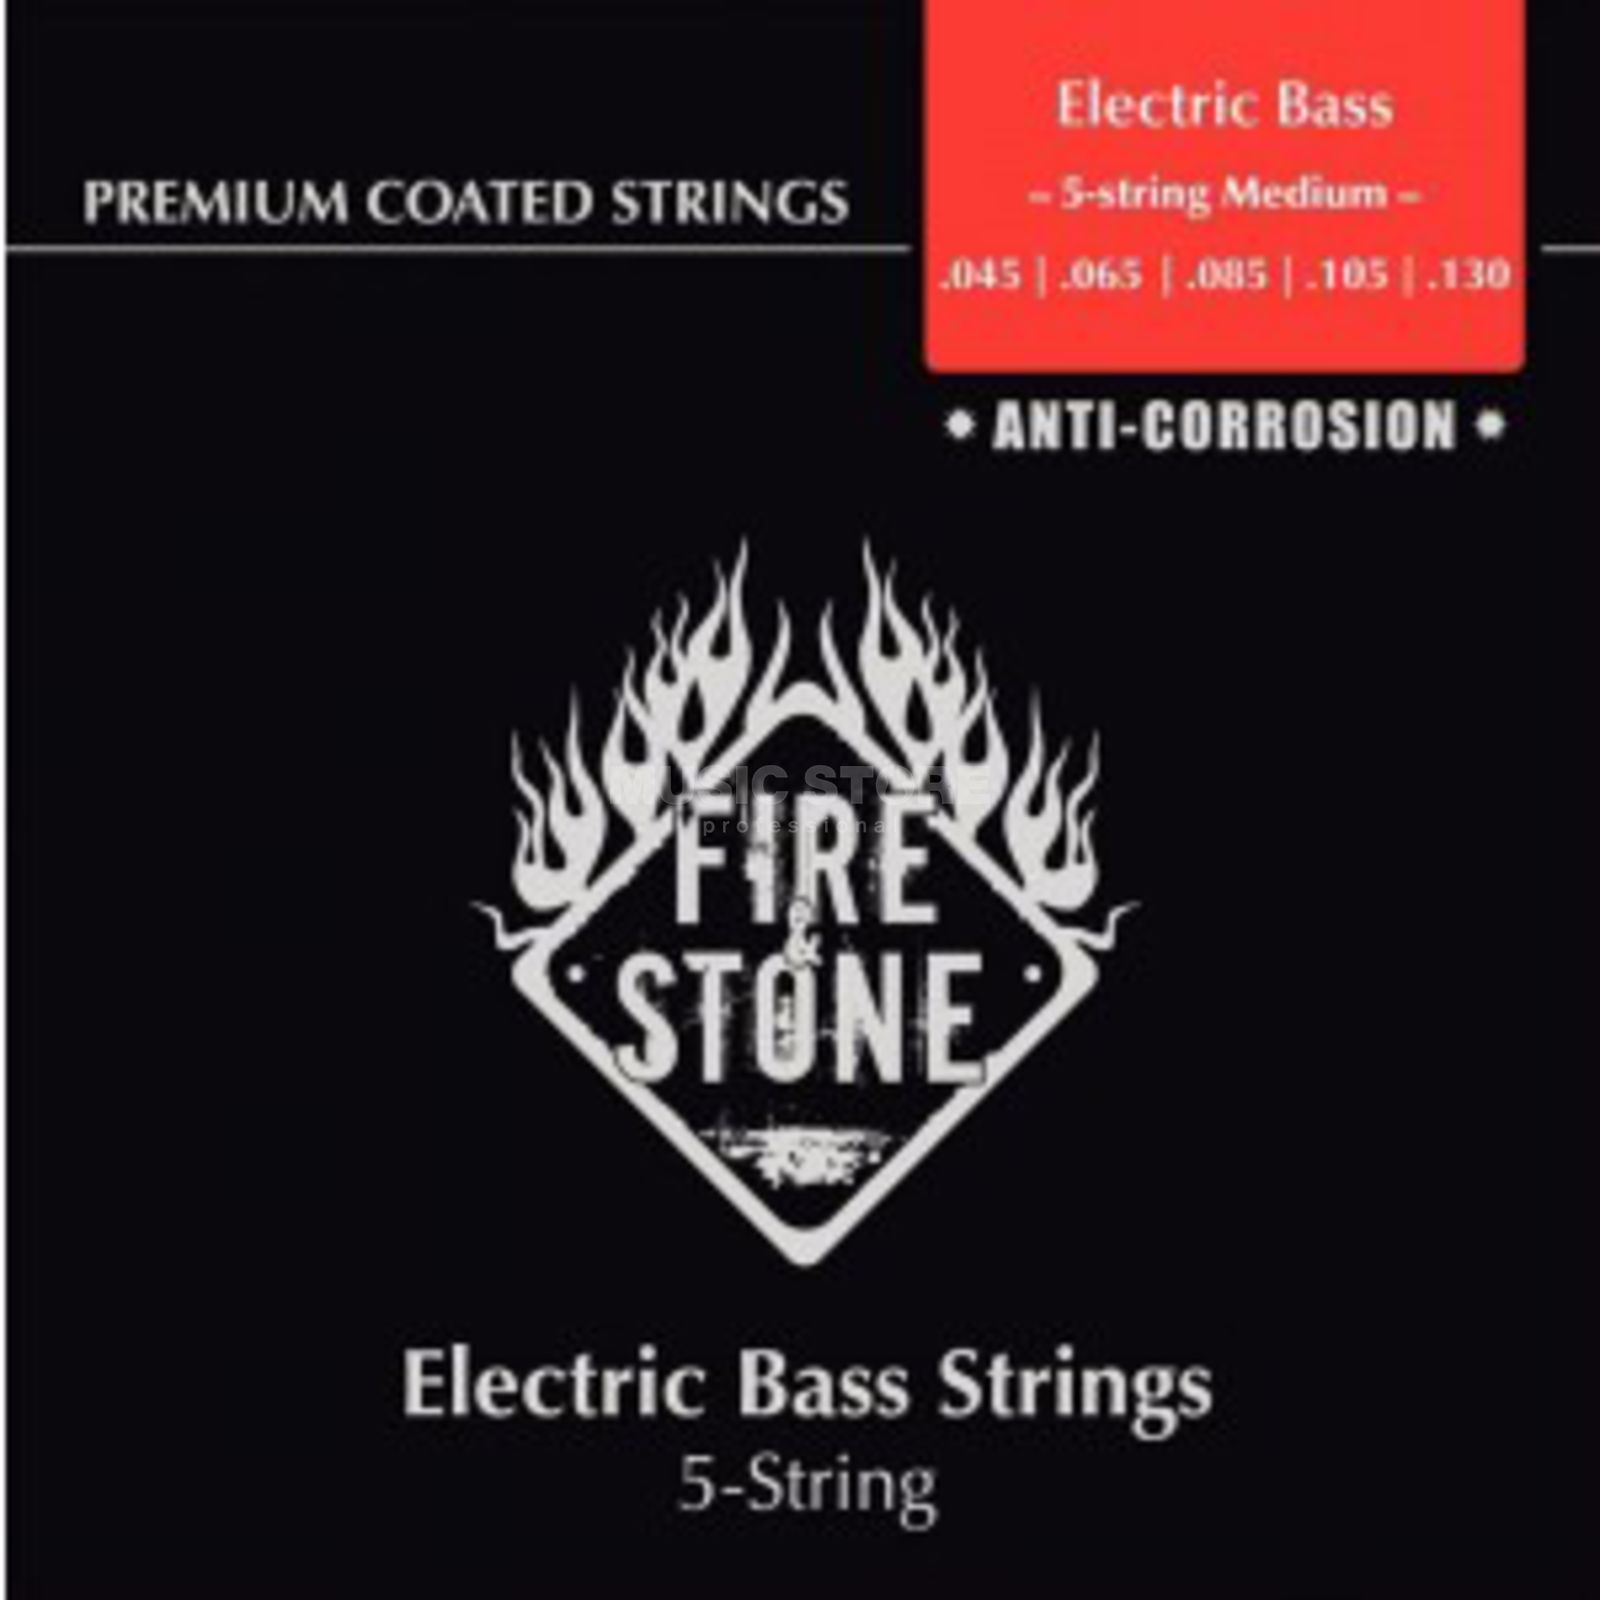 Fire & Stone Bass Strings 45-130 Coated Medium Product Image